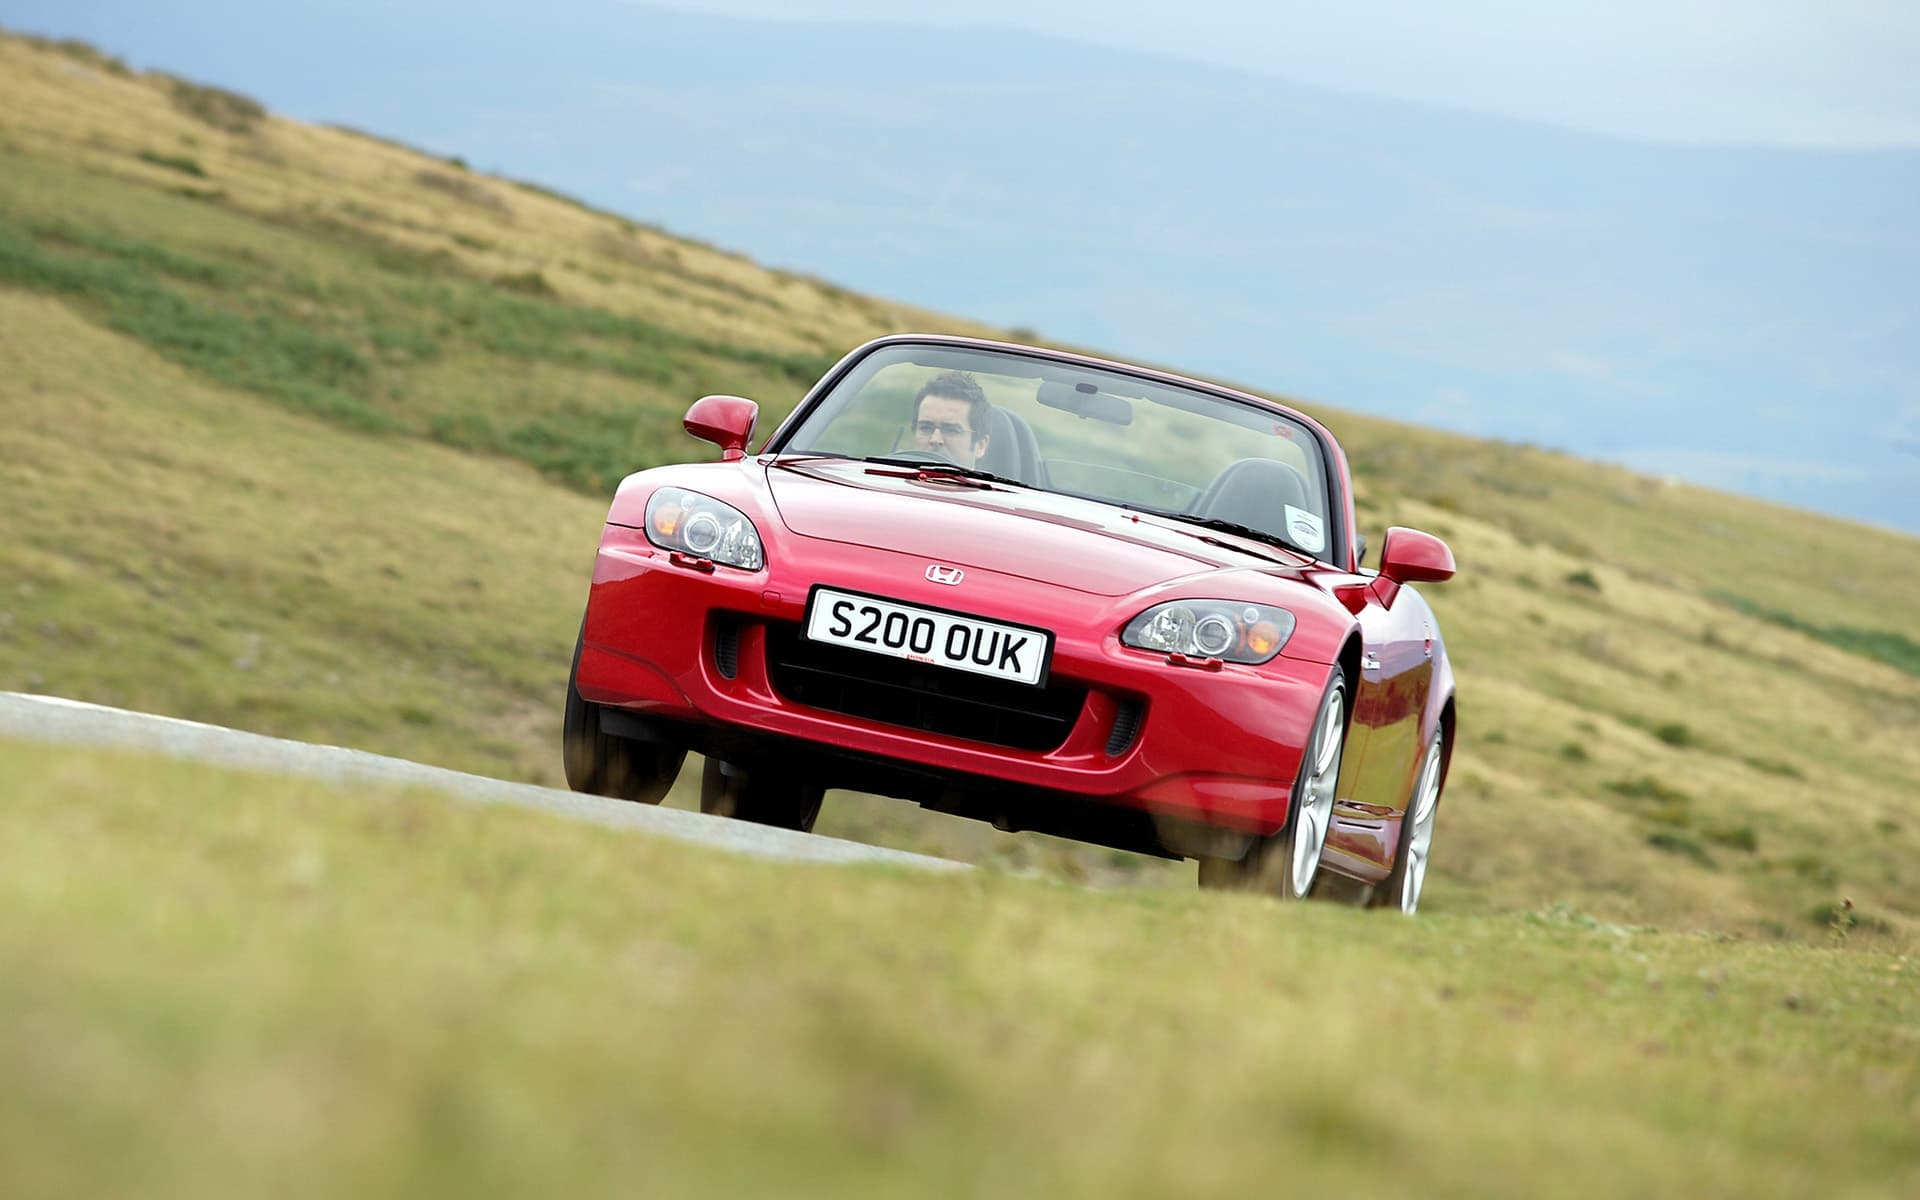 HD 2003 Honda S2000 wallpaper